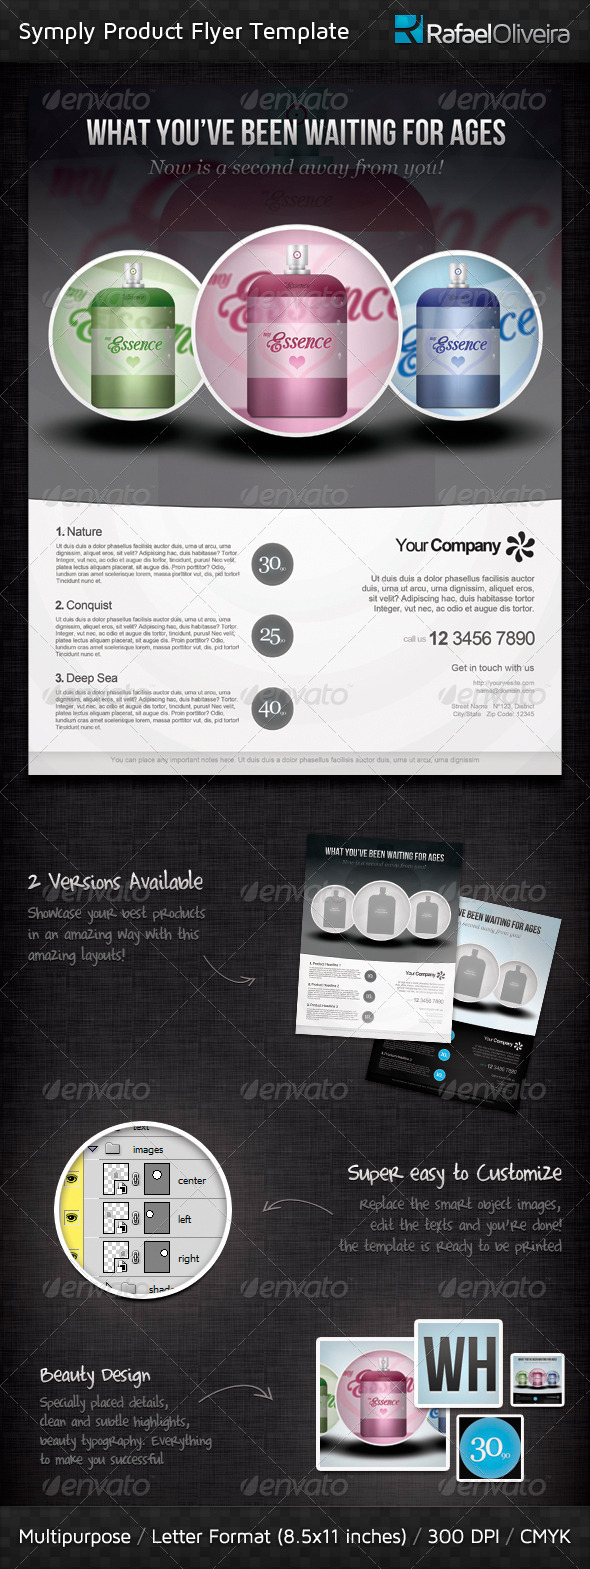 Symply Product Promotion Flyer - Commerce Flyers